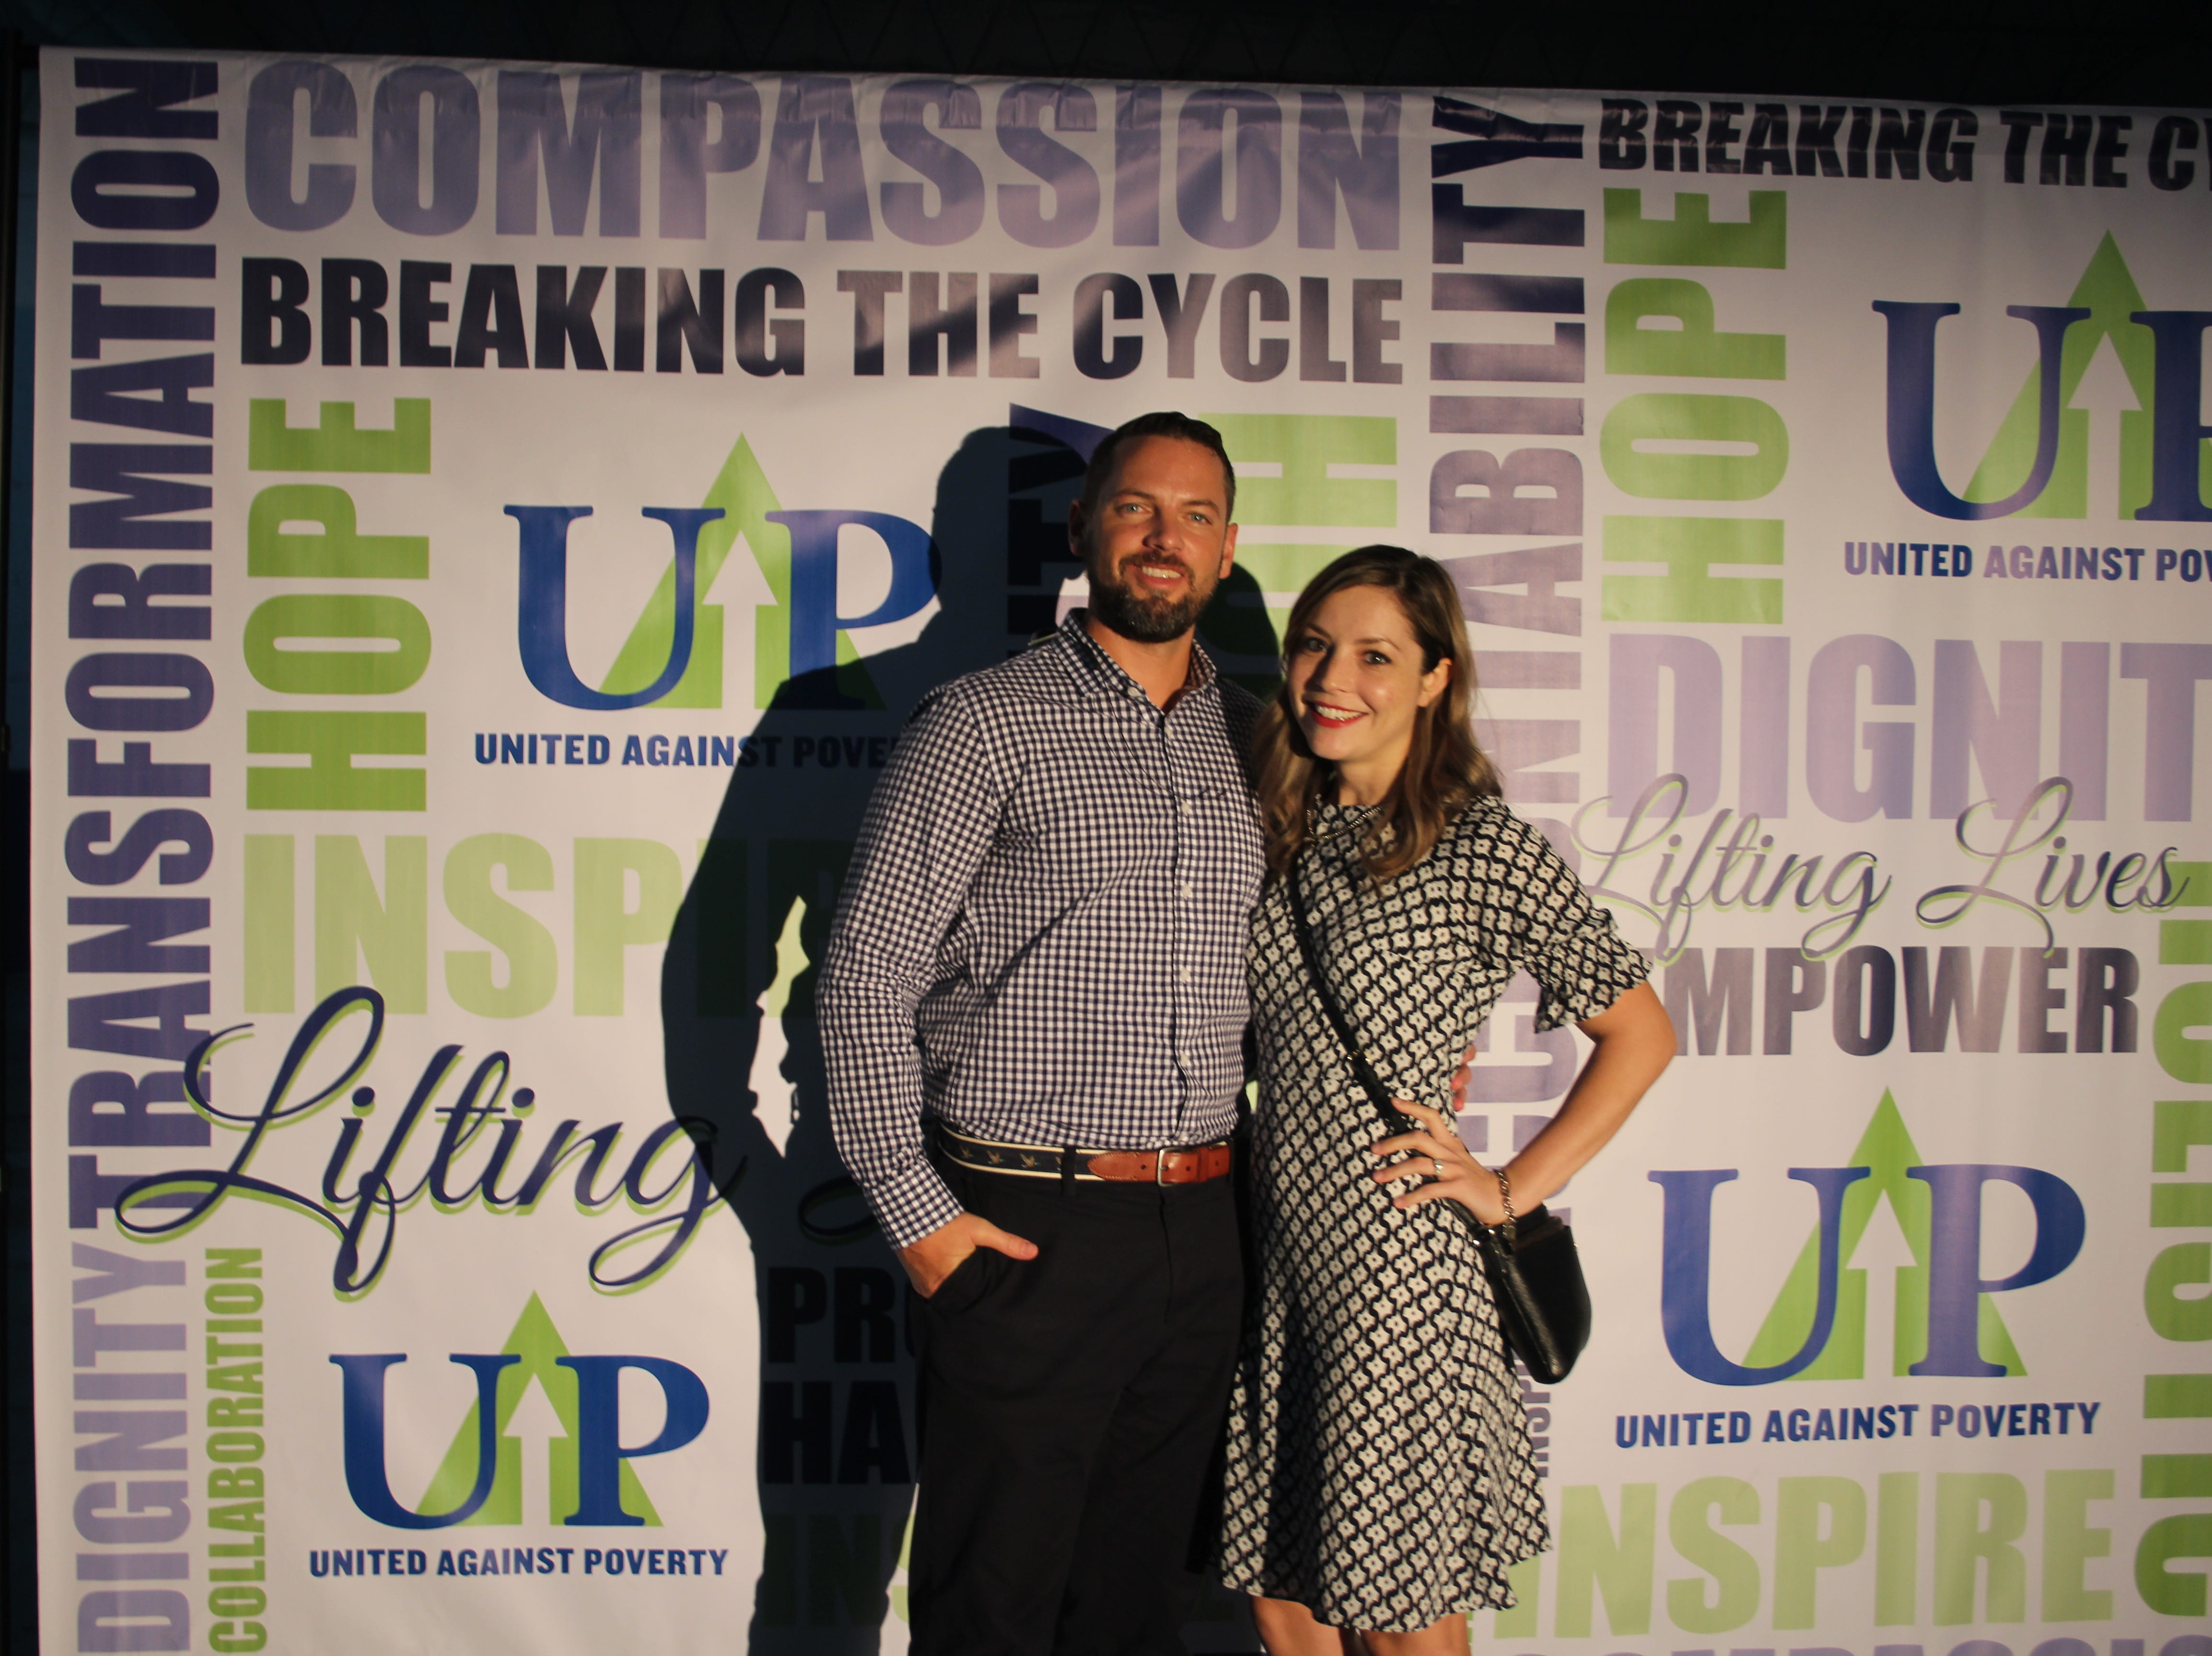 Stephen and Tori Hume at United Against Poverty's Lifting Lives Out of Poverty Capital Campaign kick-off for Phase II.